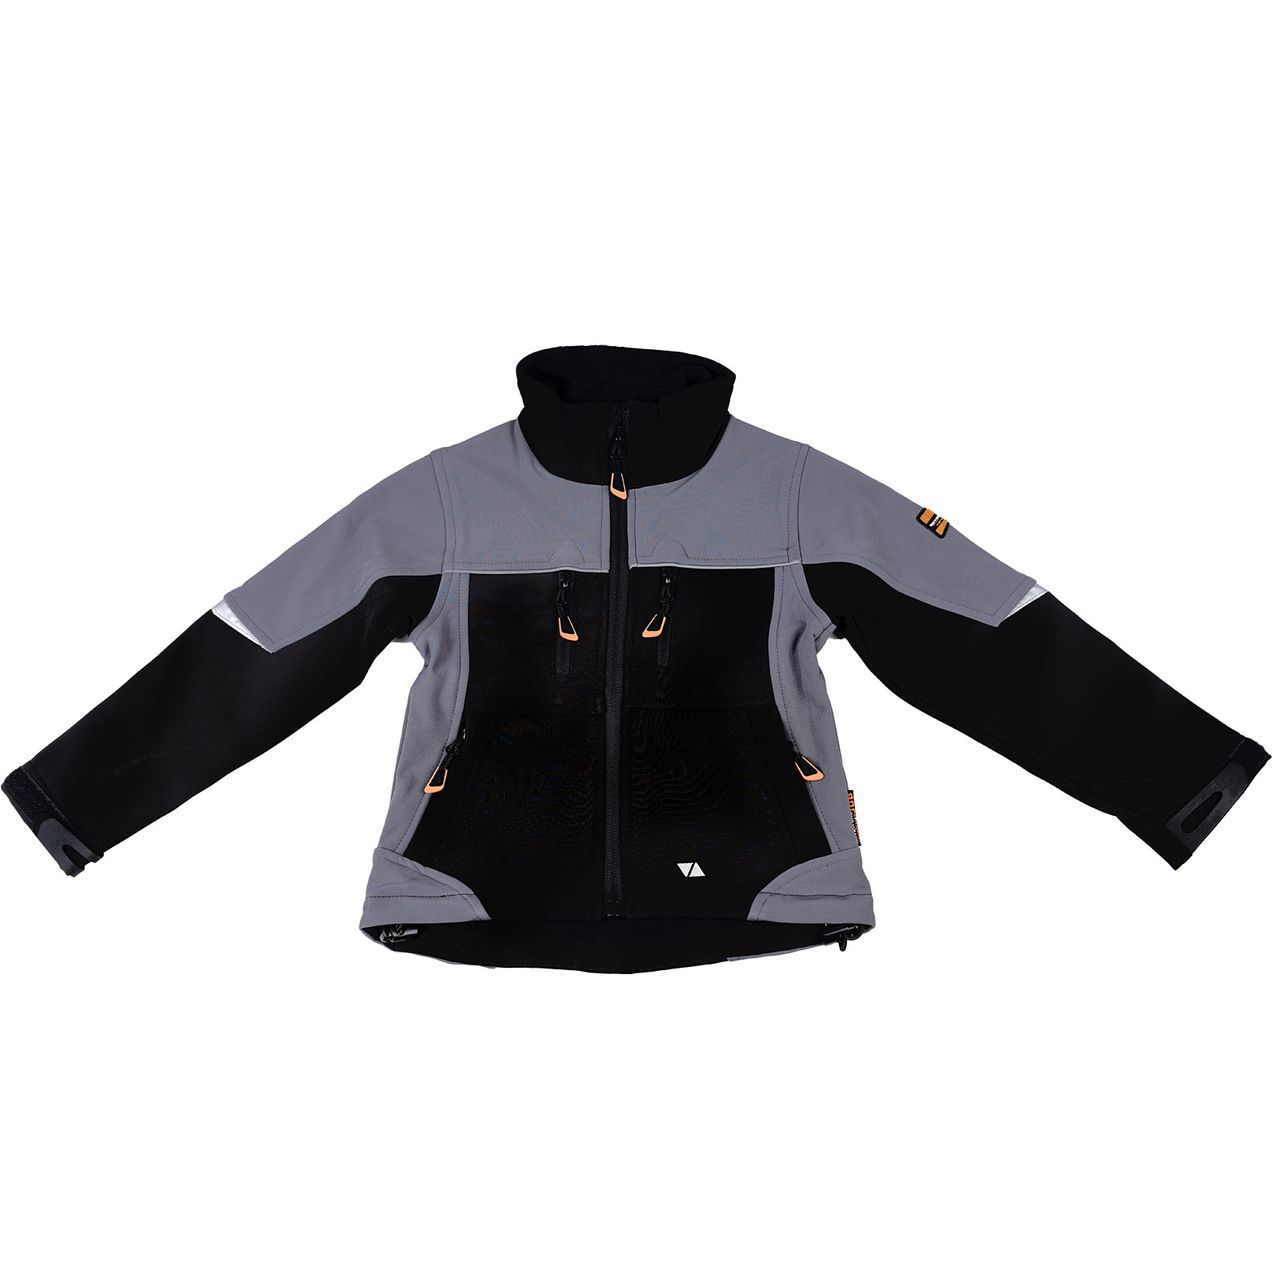 TERRATREND JOB Revolution Kinder-Softshelljacke, Schwarz, Grau